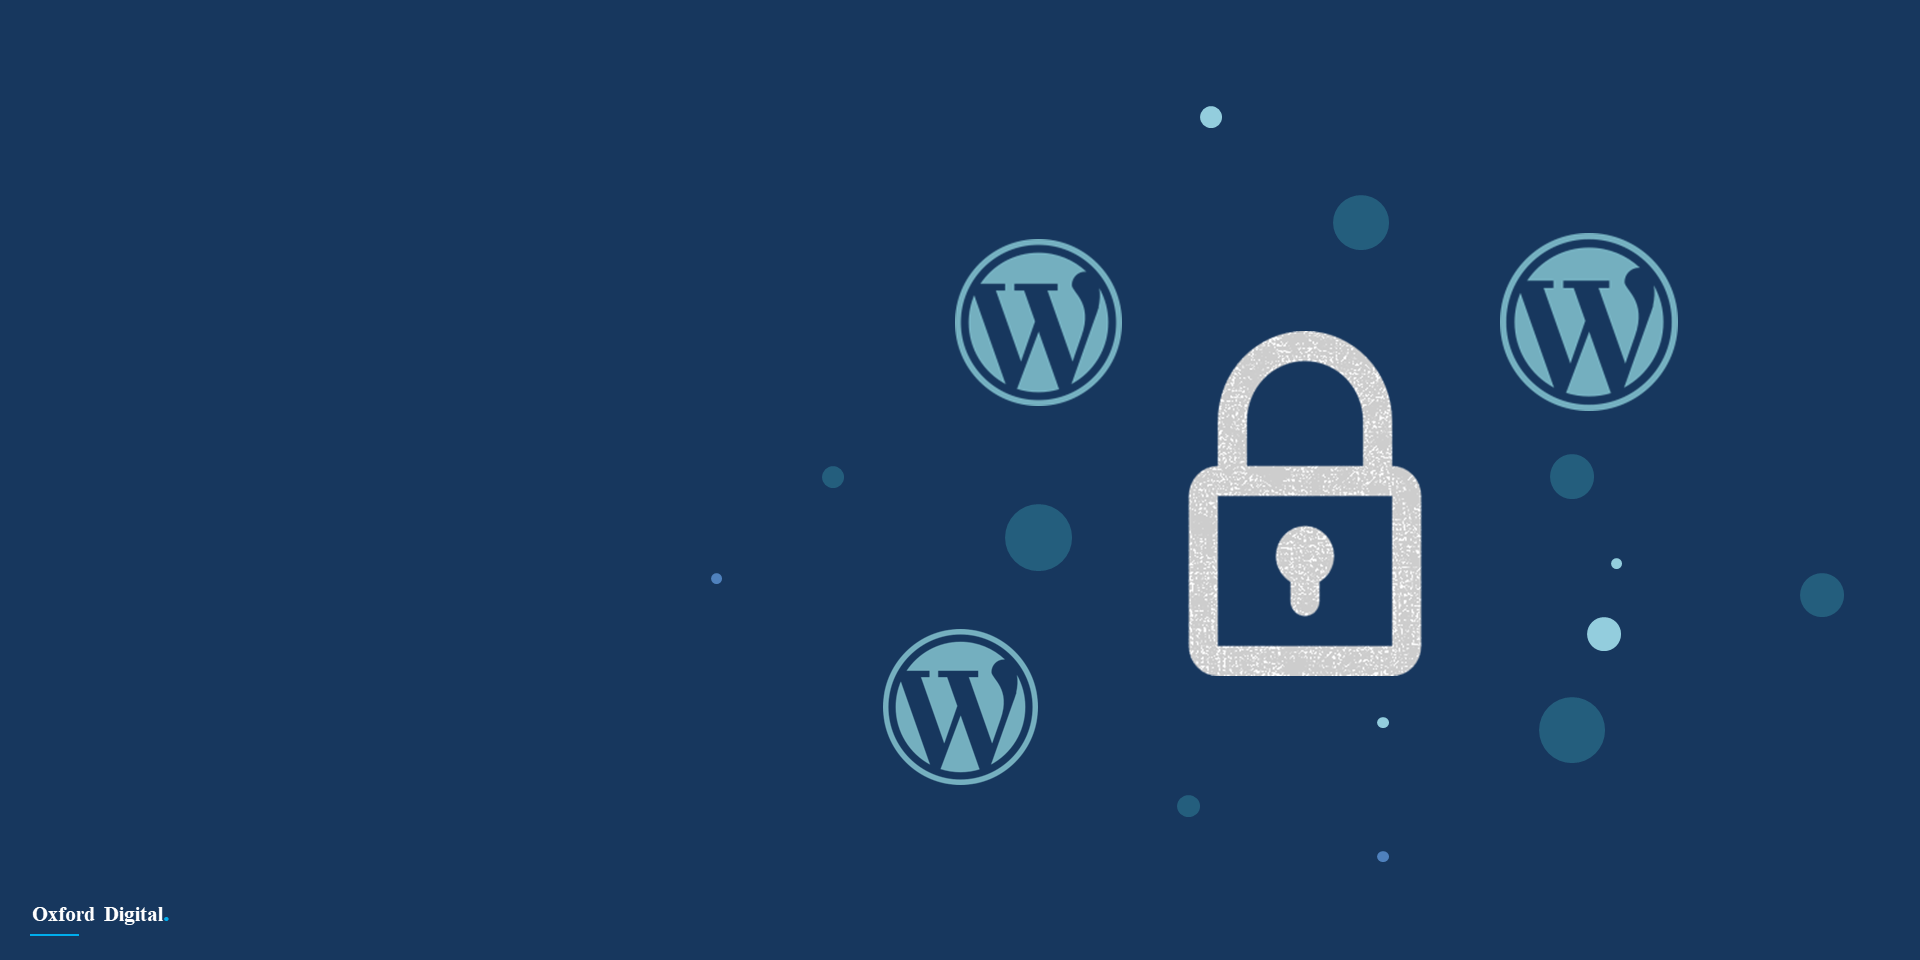 Is WordPress a secure Content Management System (CMS)?